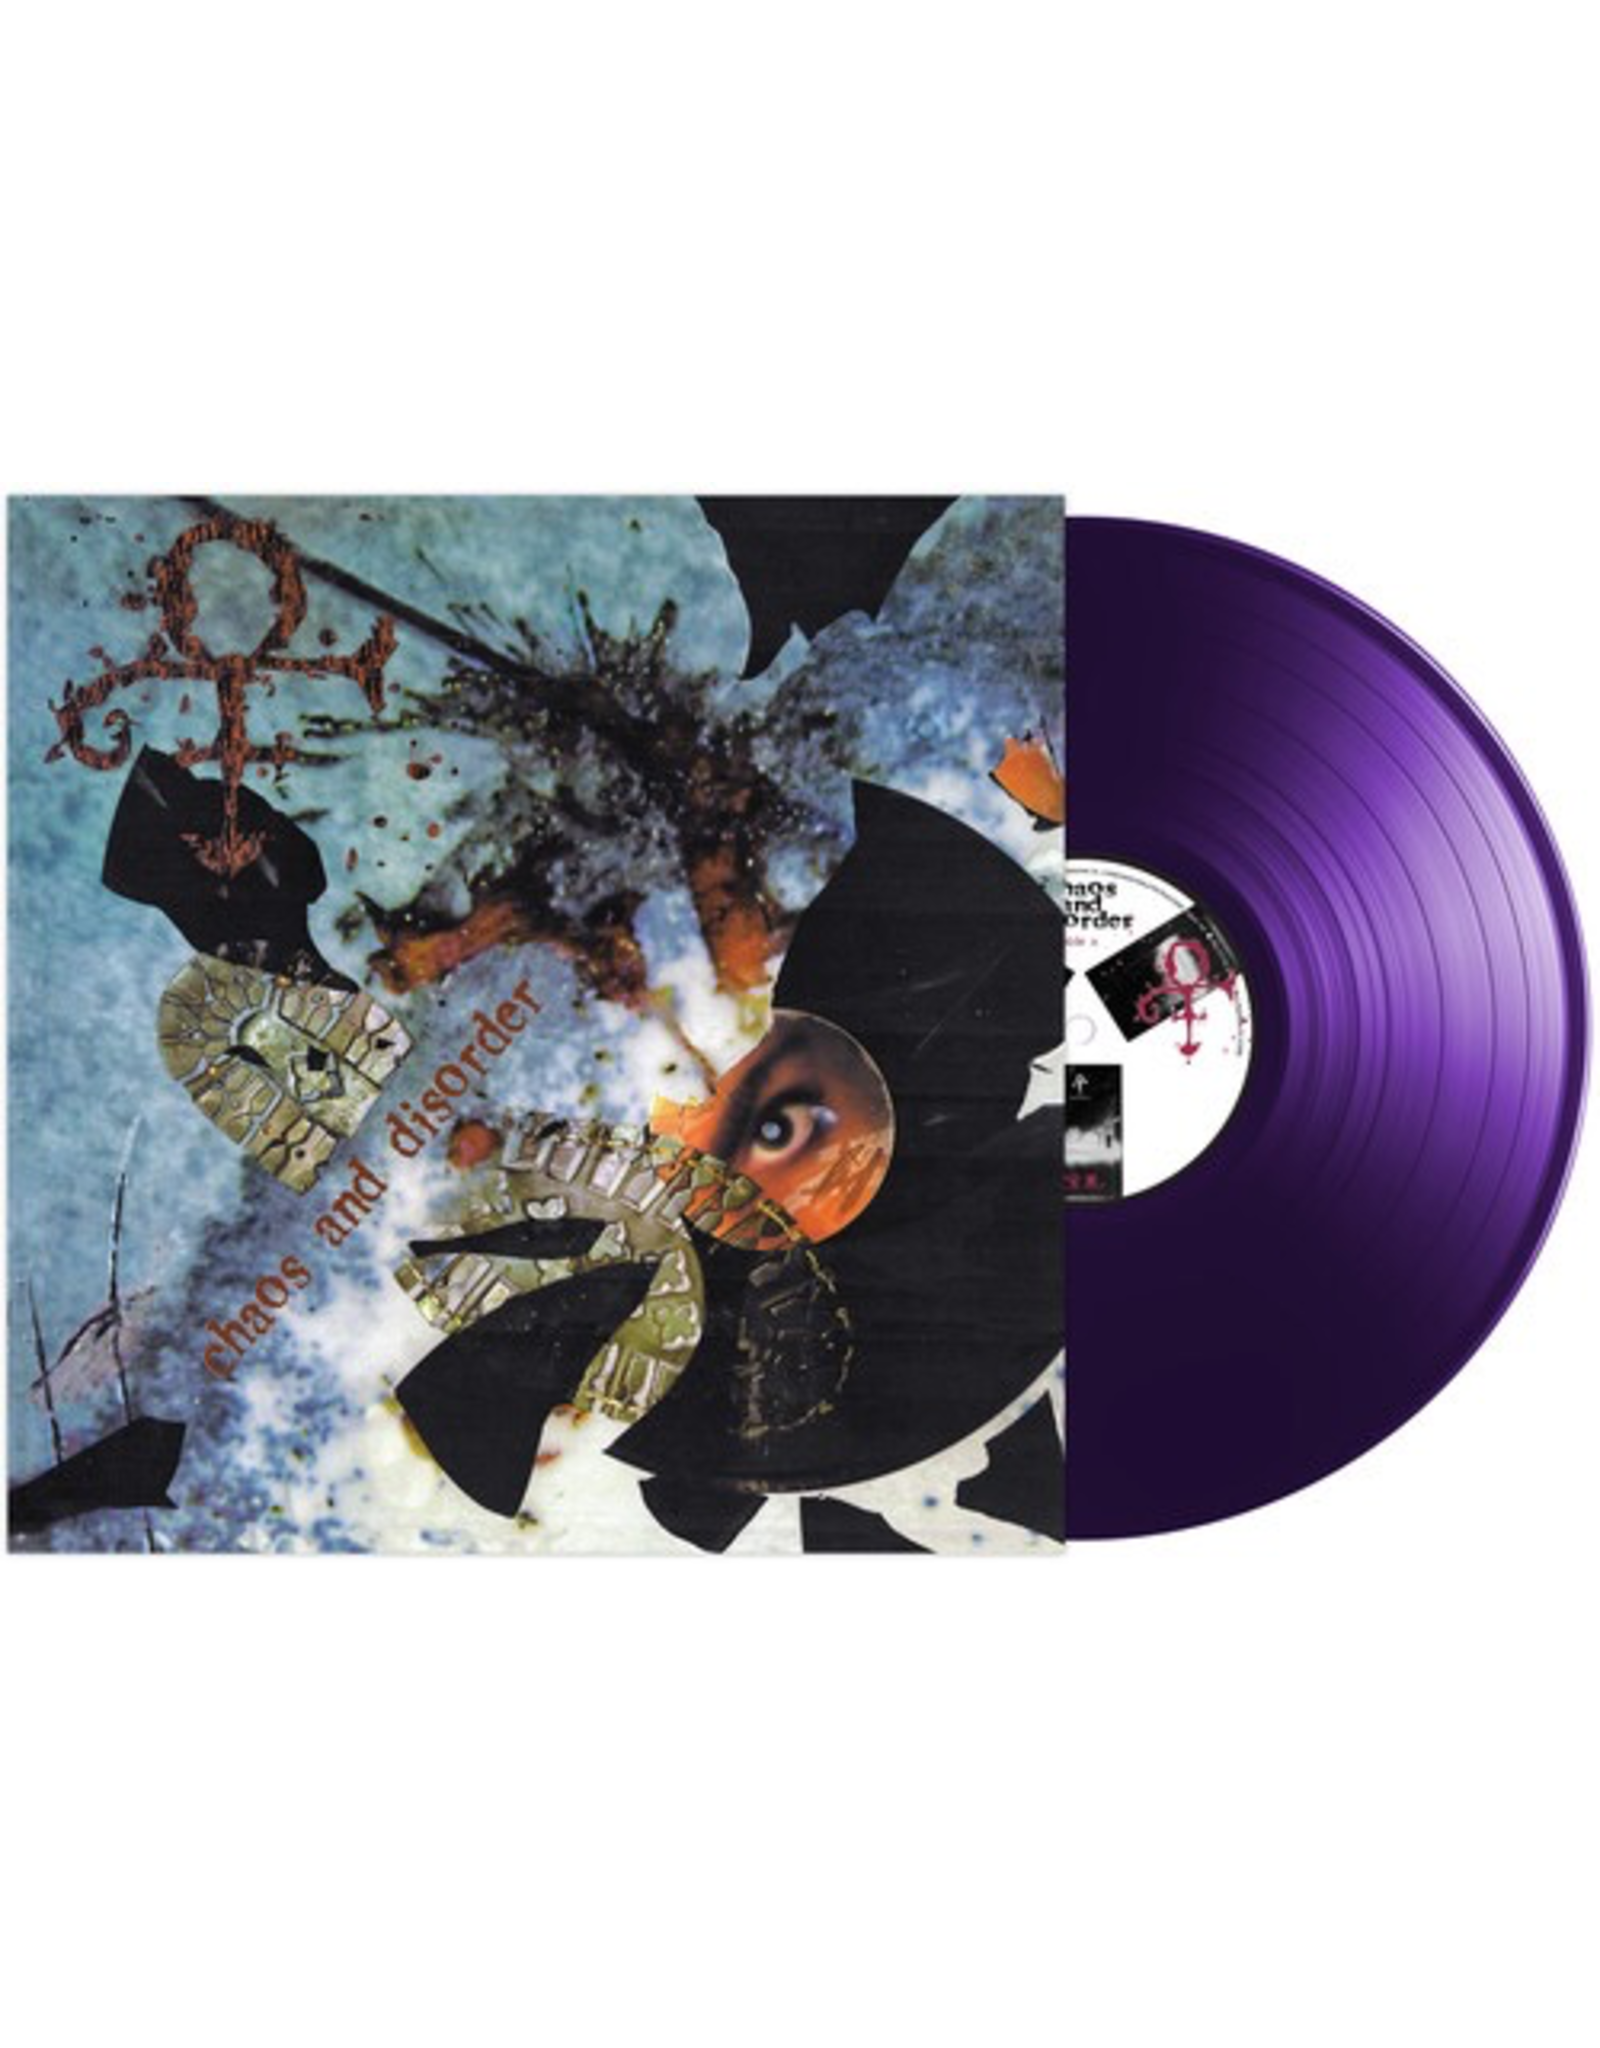 New Vinyl Prince - Chaos & Disorder (Colored) LP